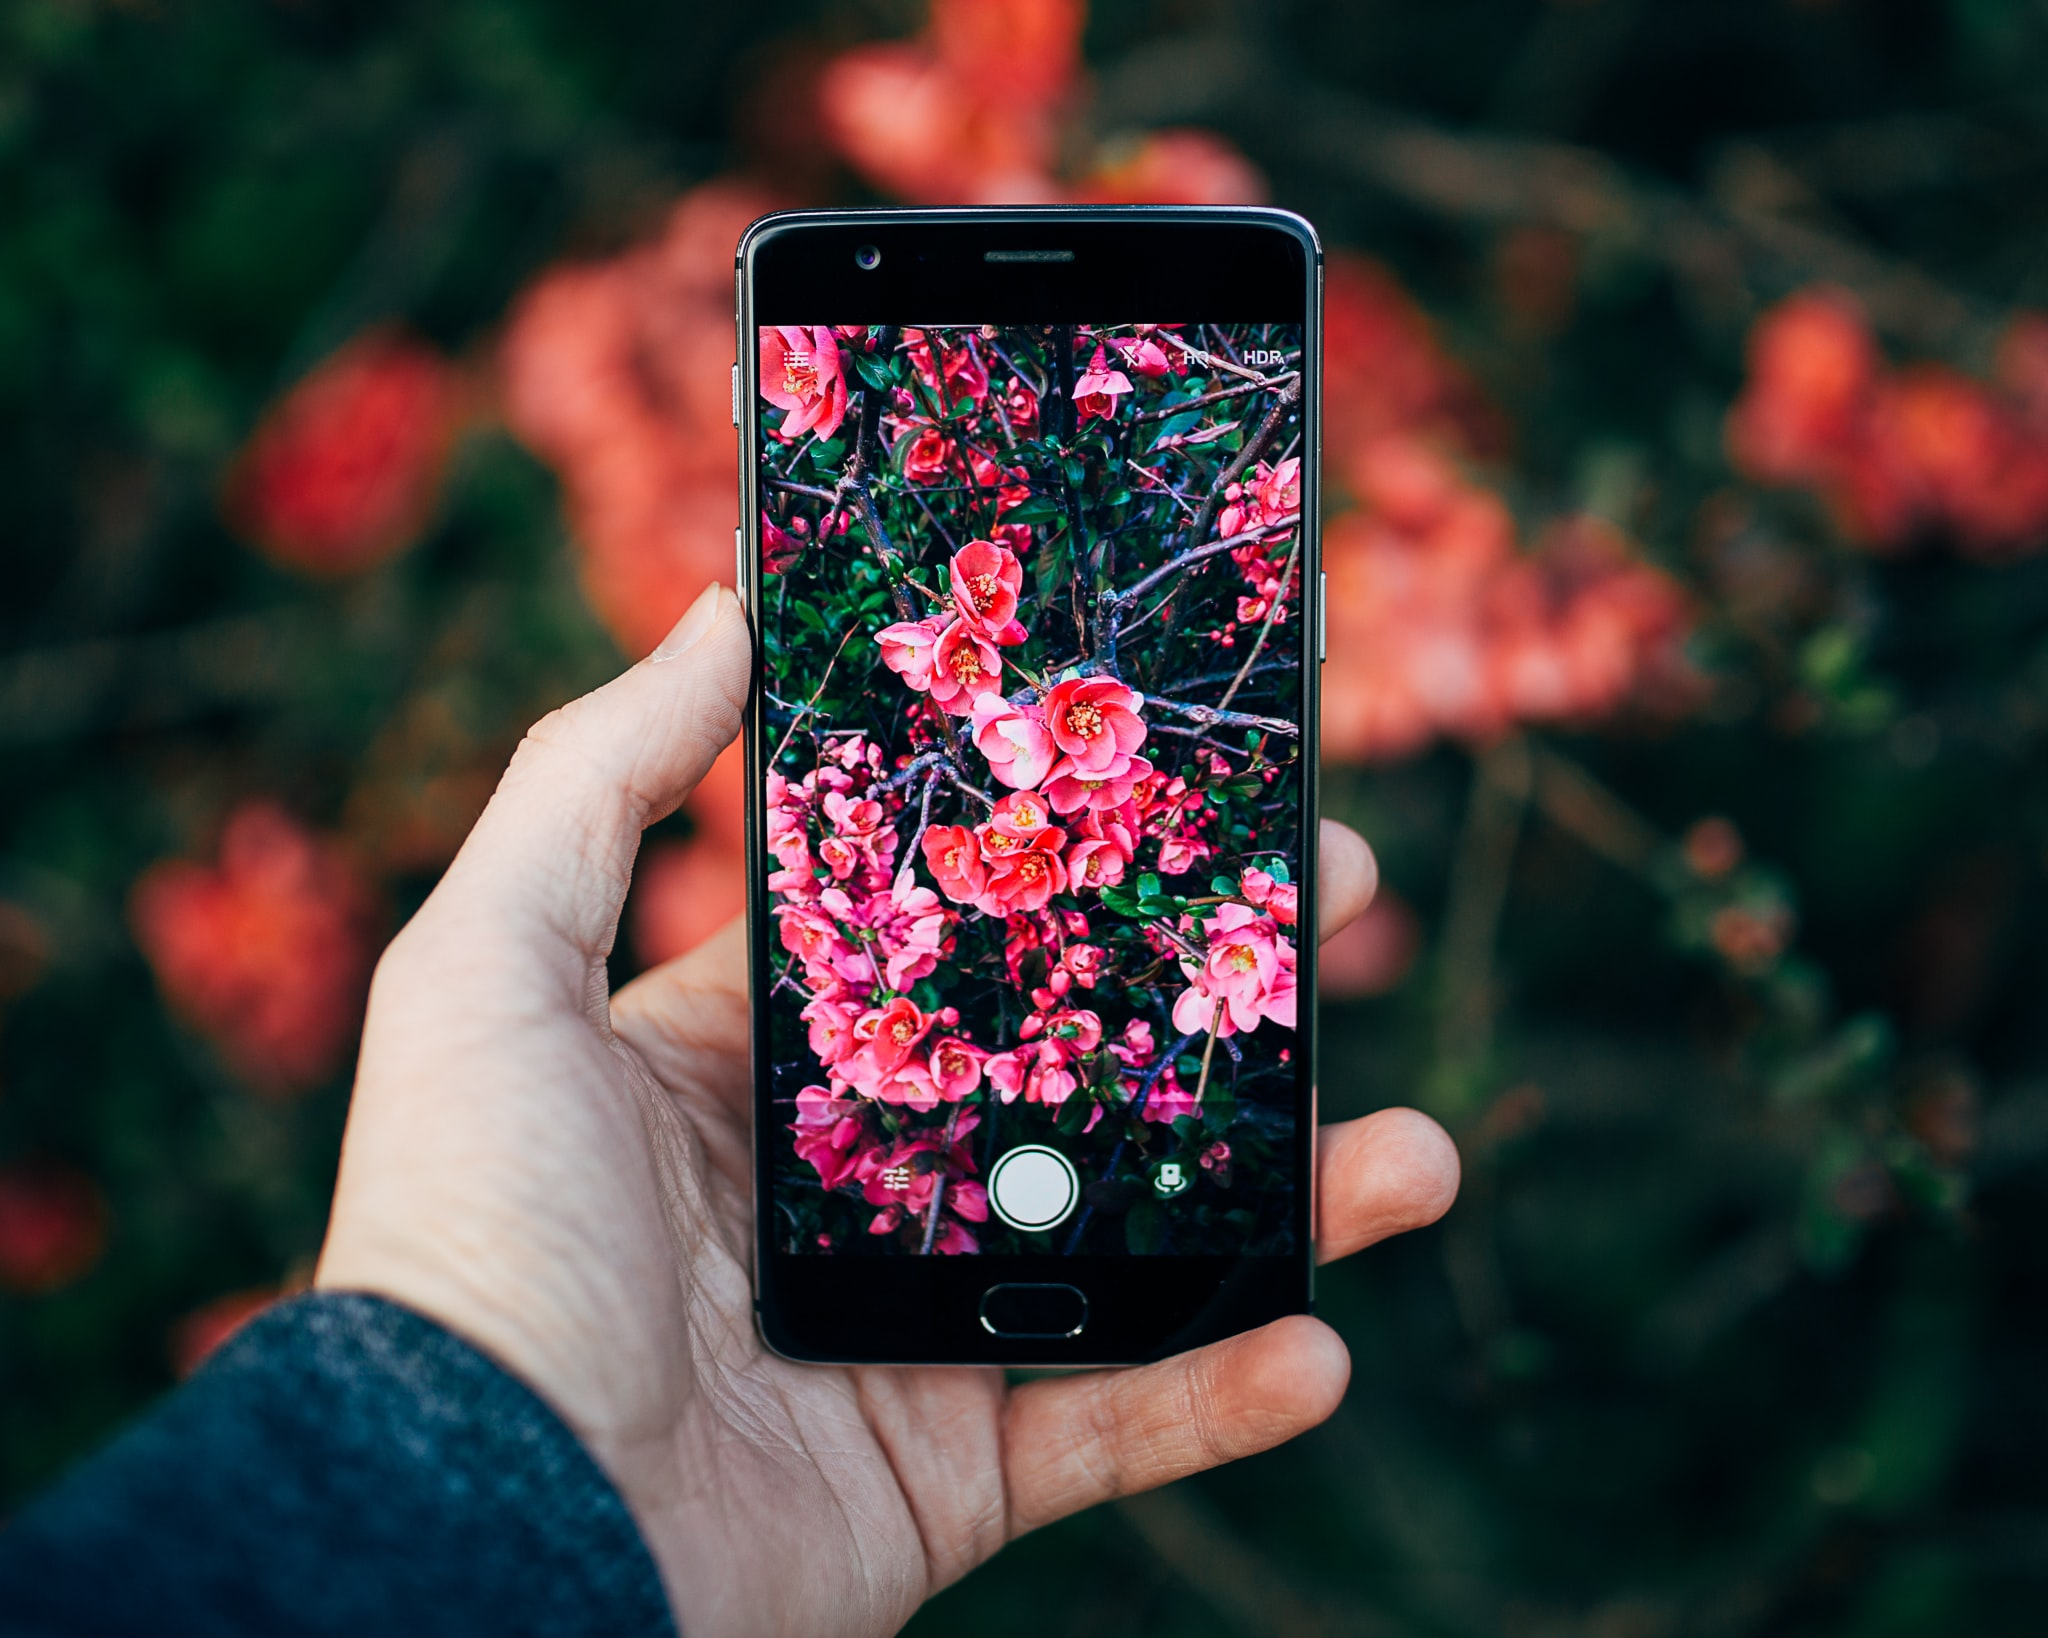 A person taking a photo of red flowers with a smartphone